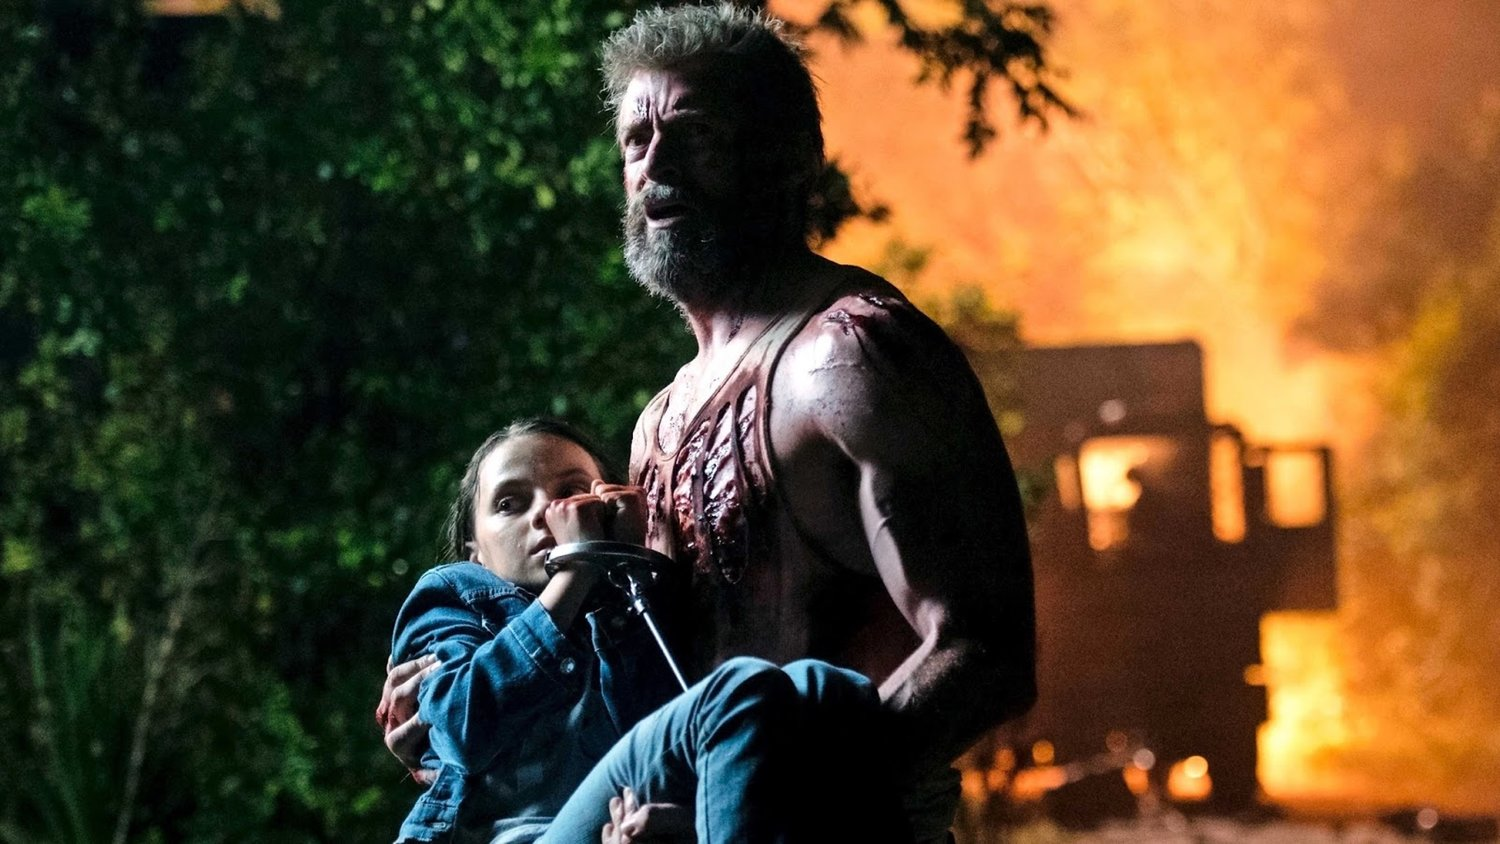 James Mangold Masterfully Revealed the Ending of LOGAN in THE WOLVERINE